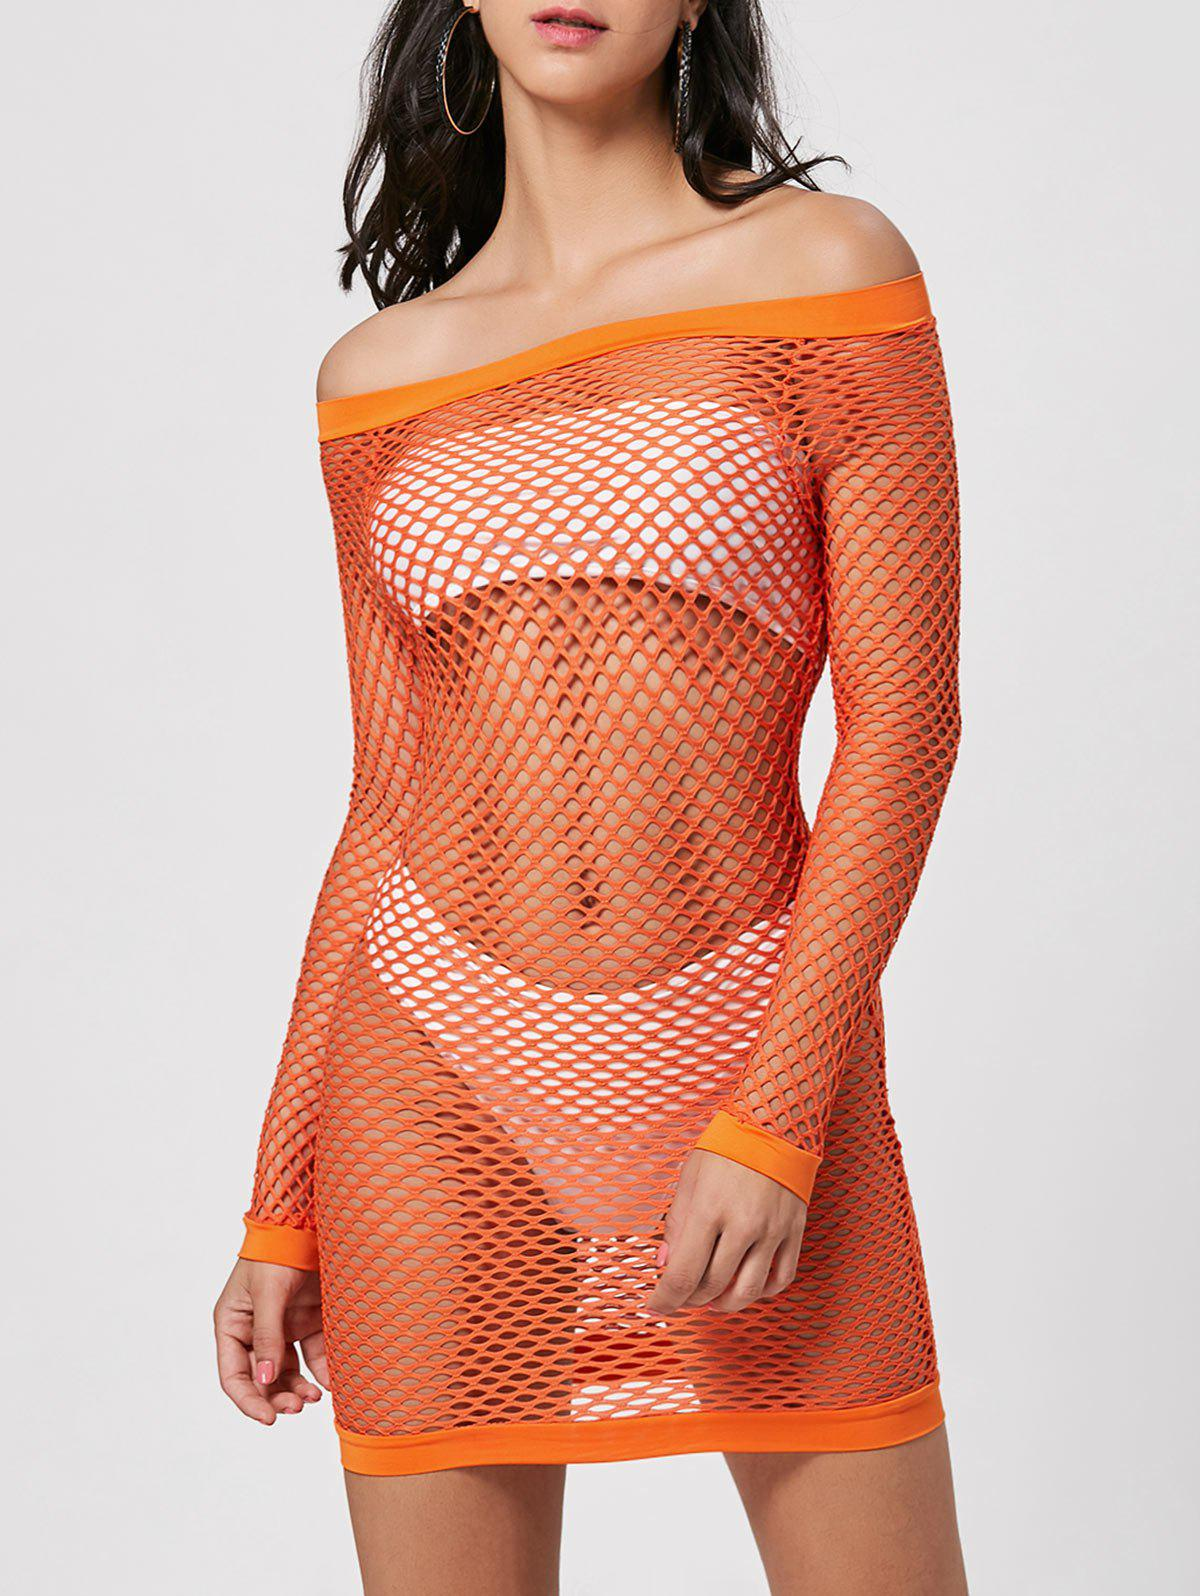 Long Sleeve Openwork Sheer Dress - JACINTH XL